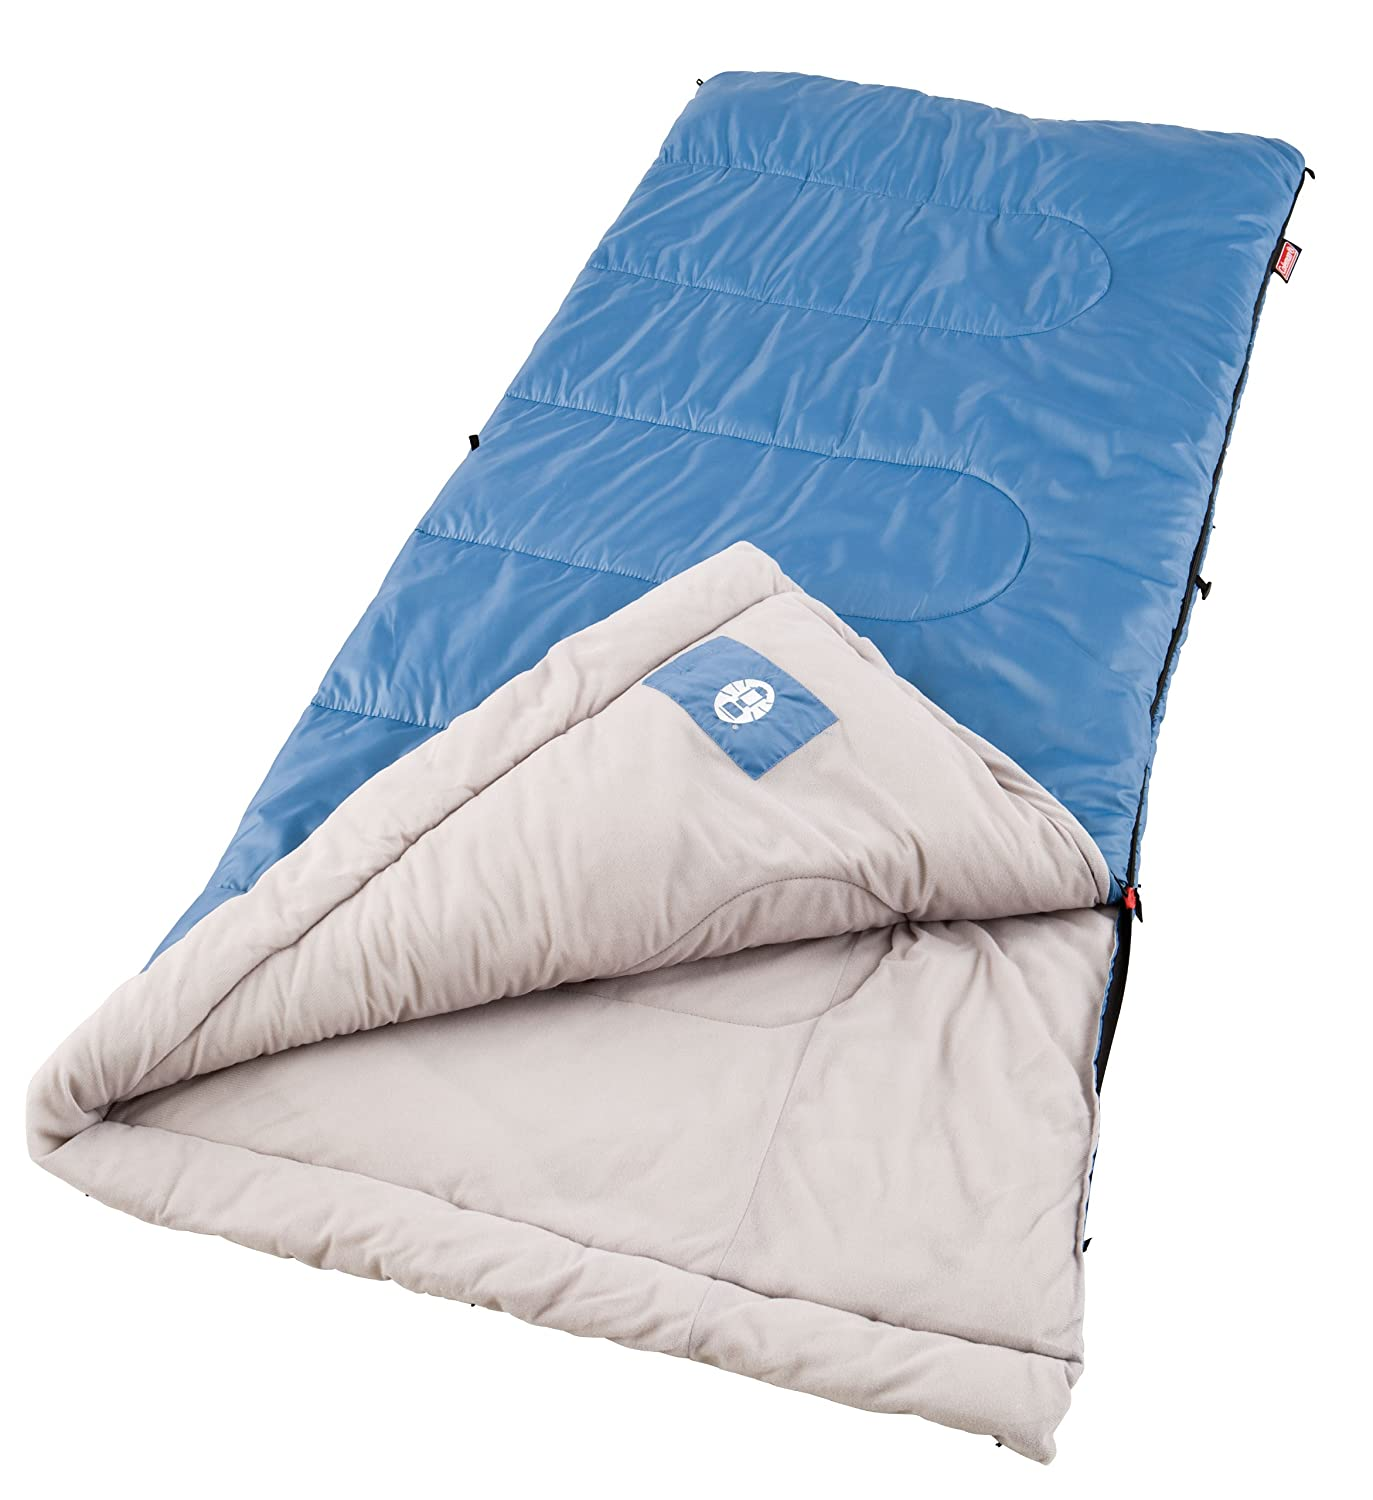 40-60 Degree Sleeping Bag